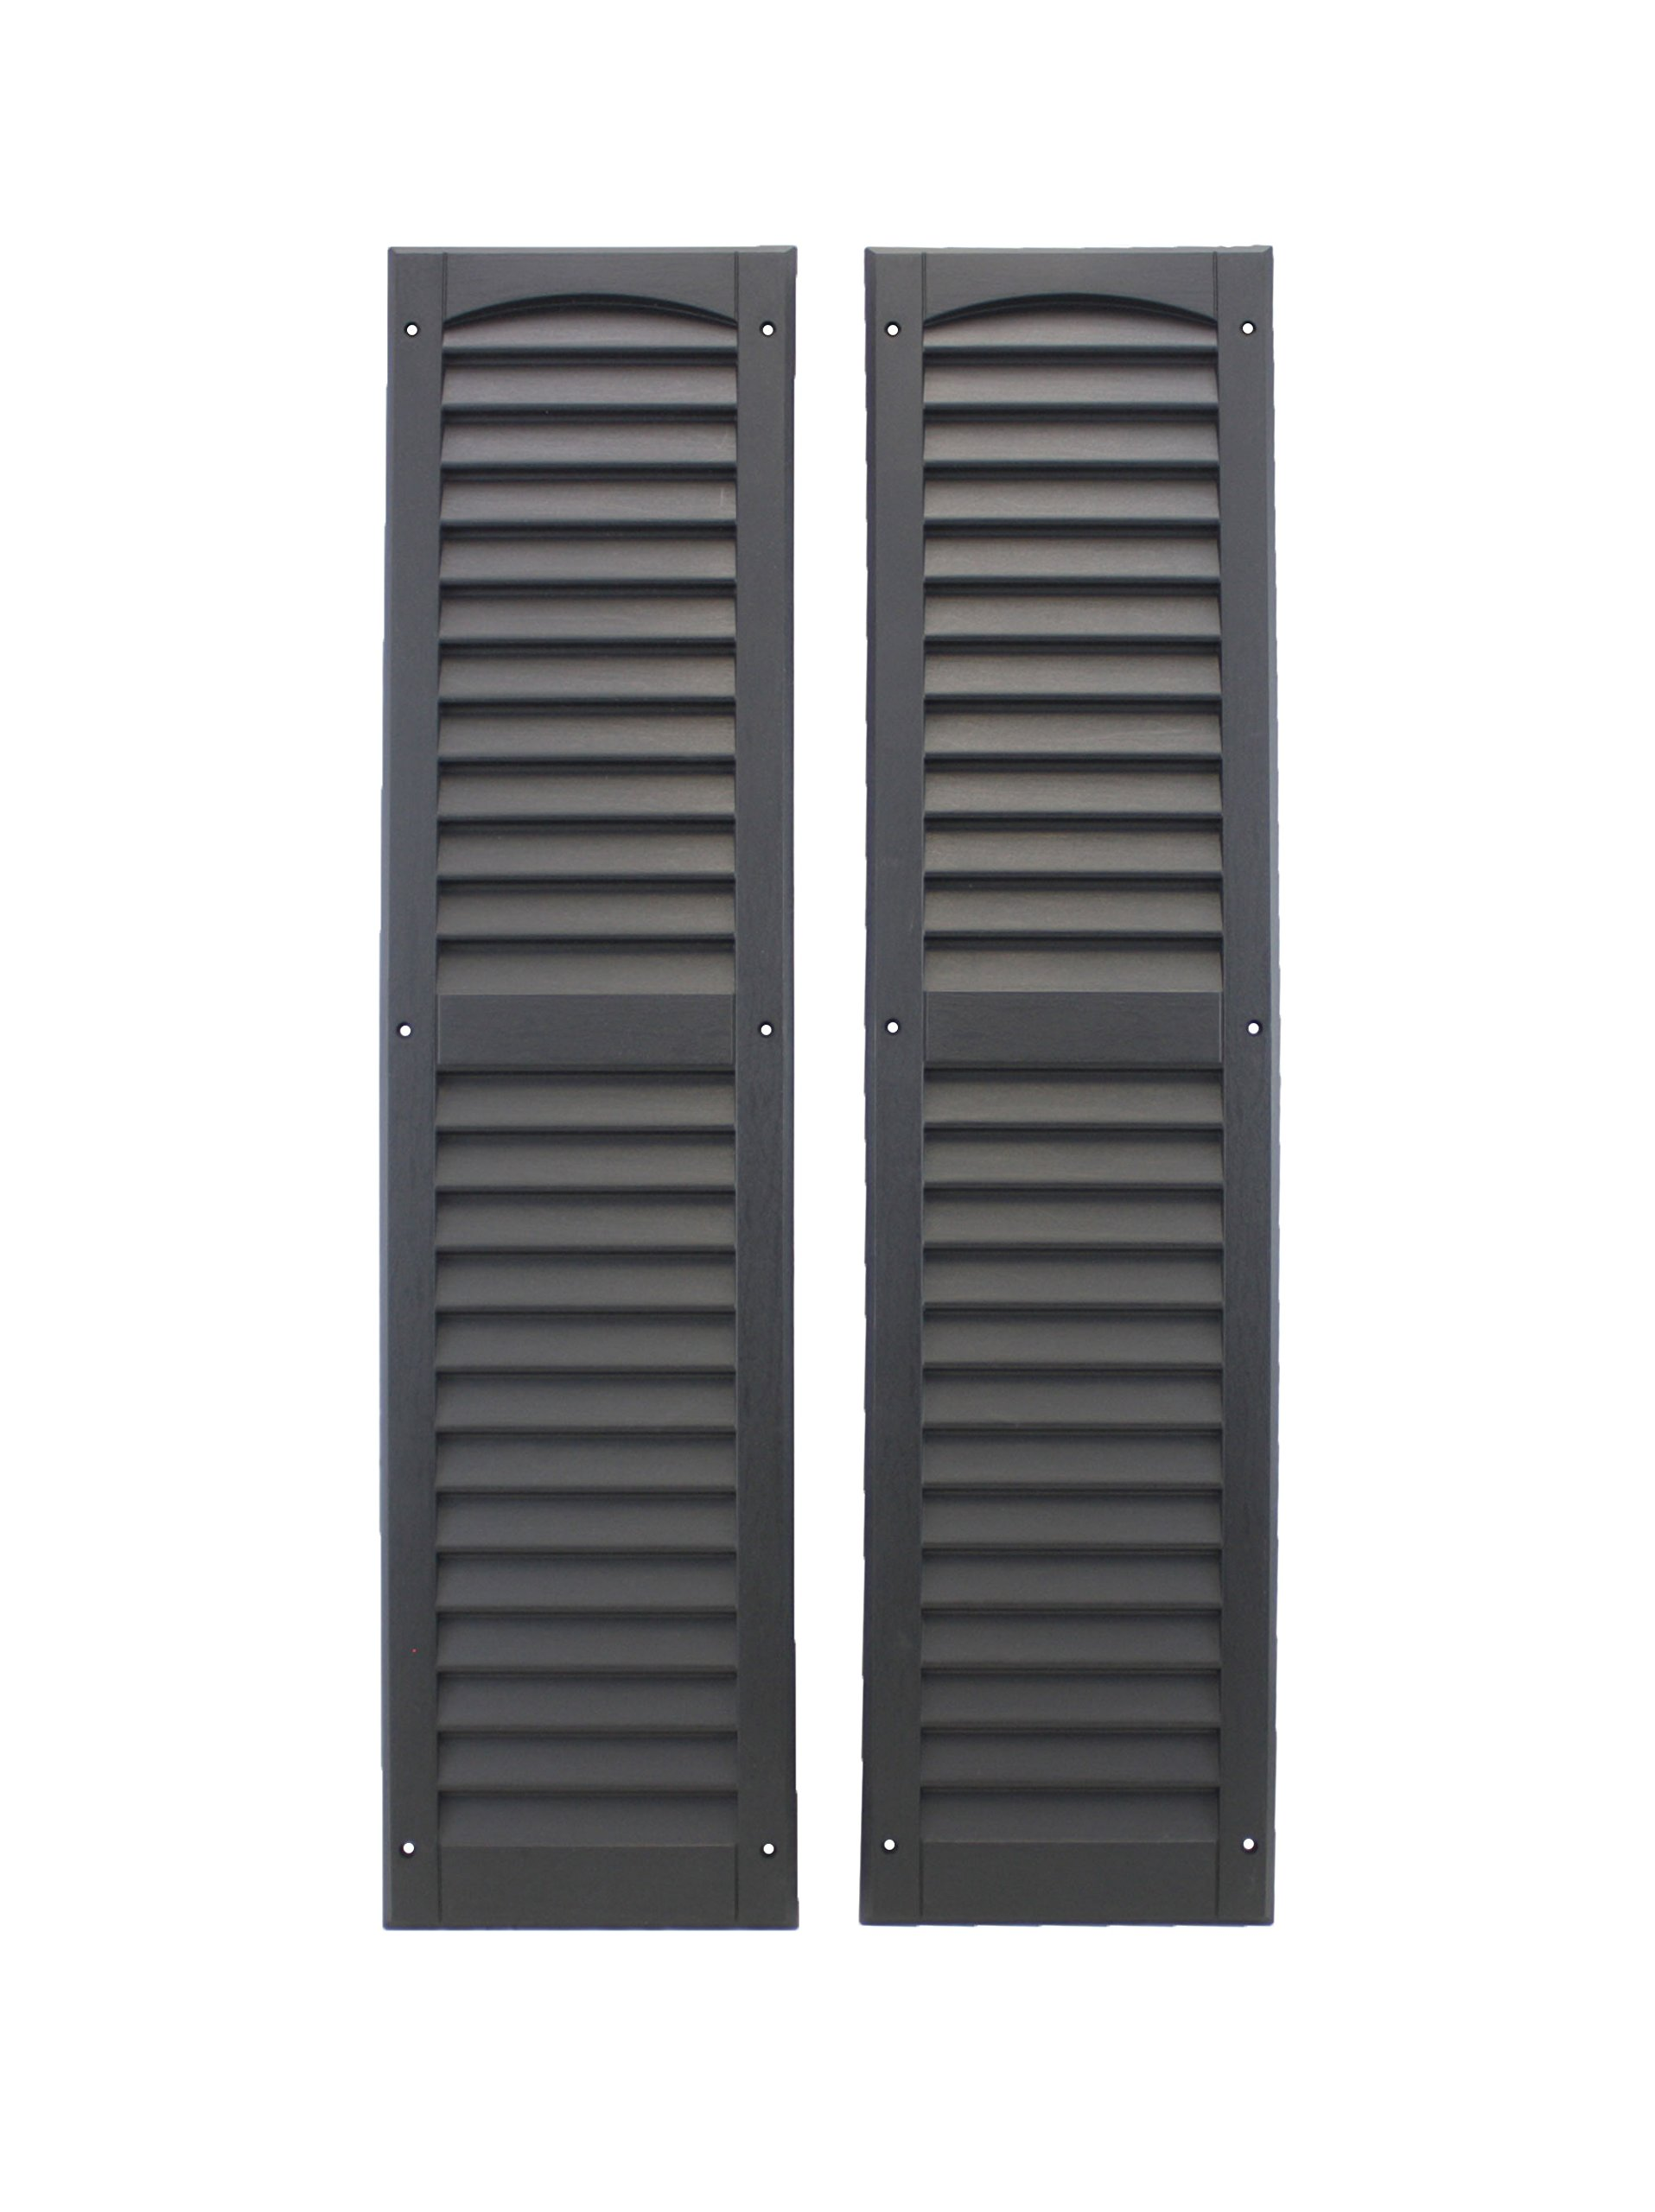 Louvered Shed Shutter Or Playhouse Shutter Black 9'' X 36'' Sold by The Pair